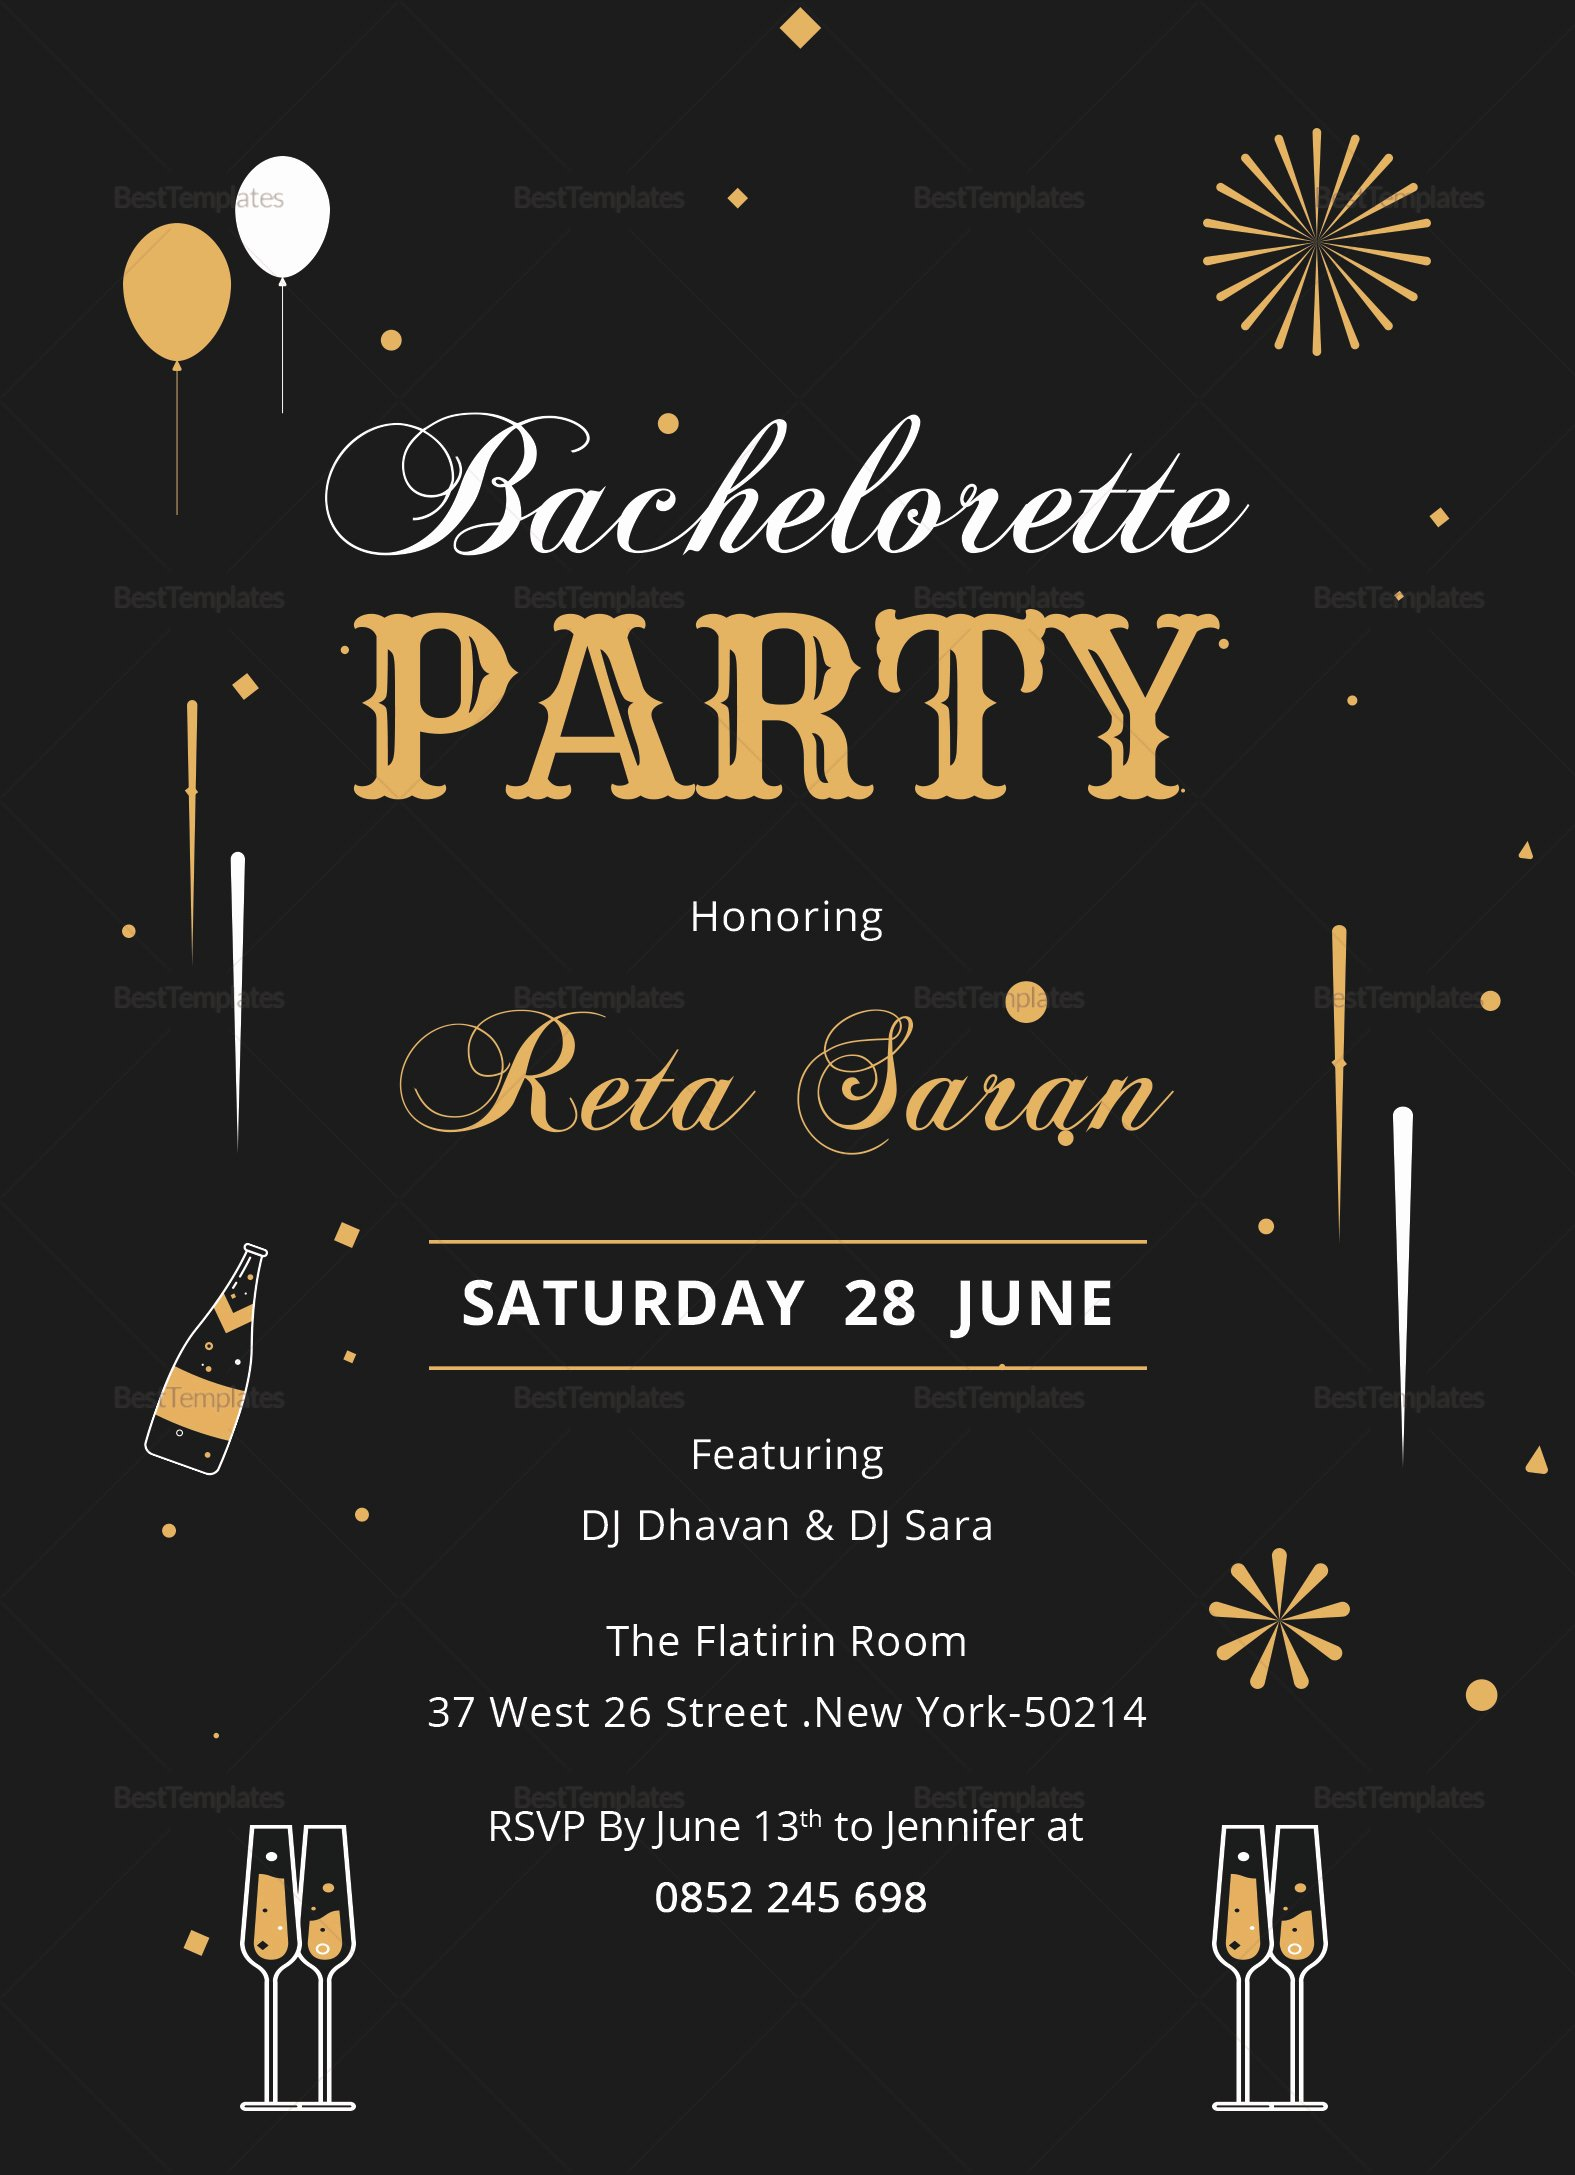 Bachelors Party Invitation Template New Bachelorette Party Invitation Card Design Template In Word